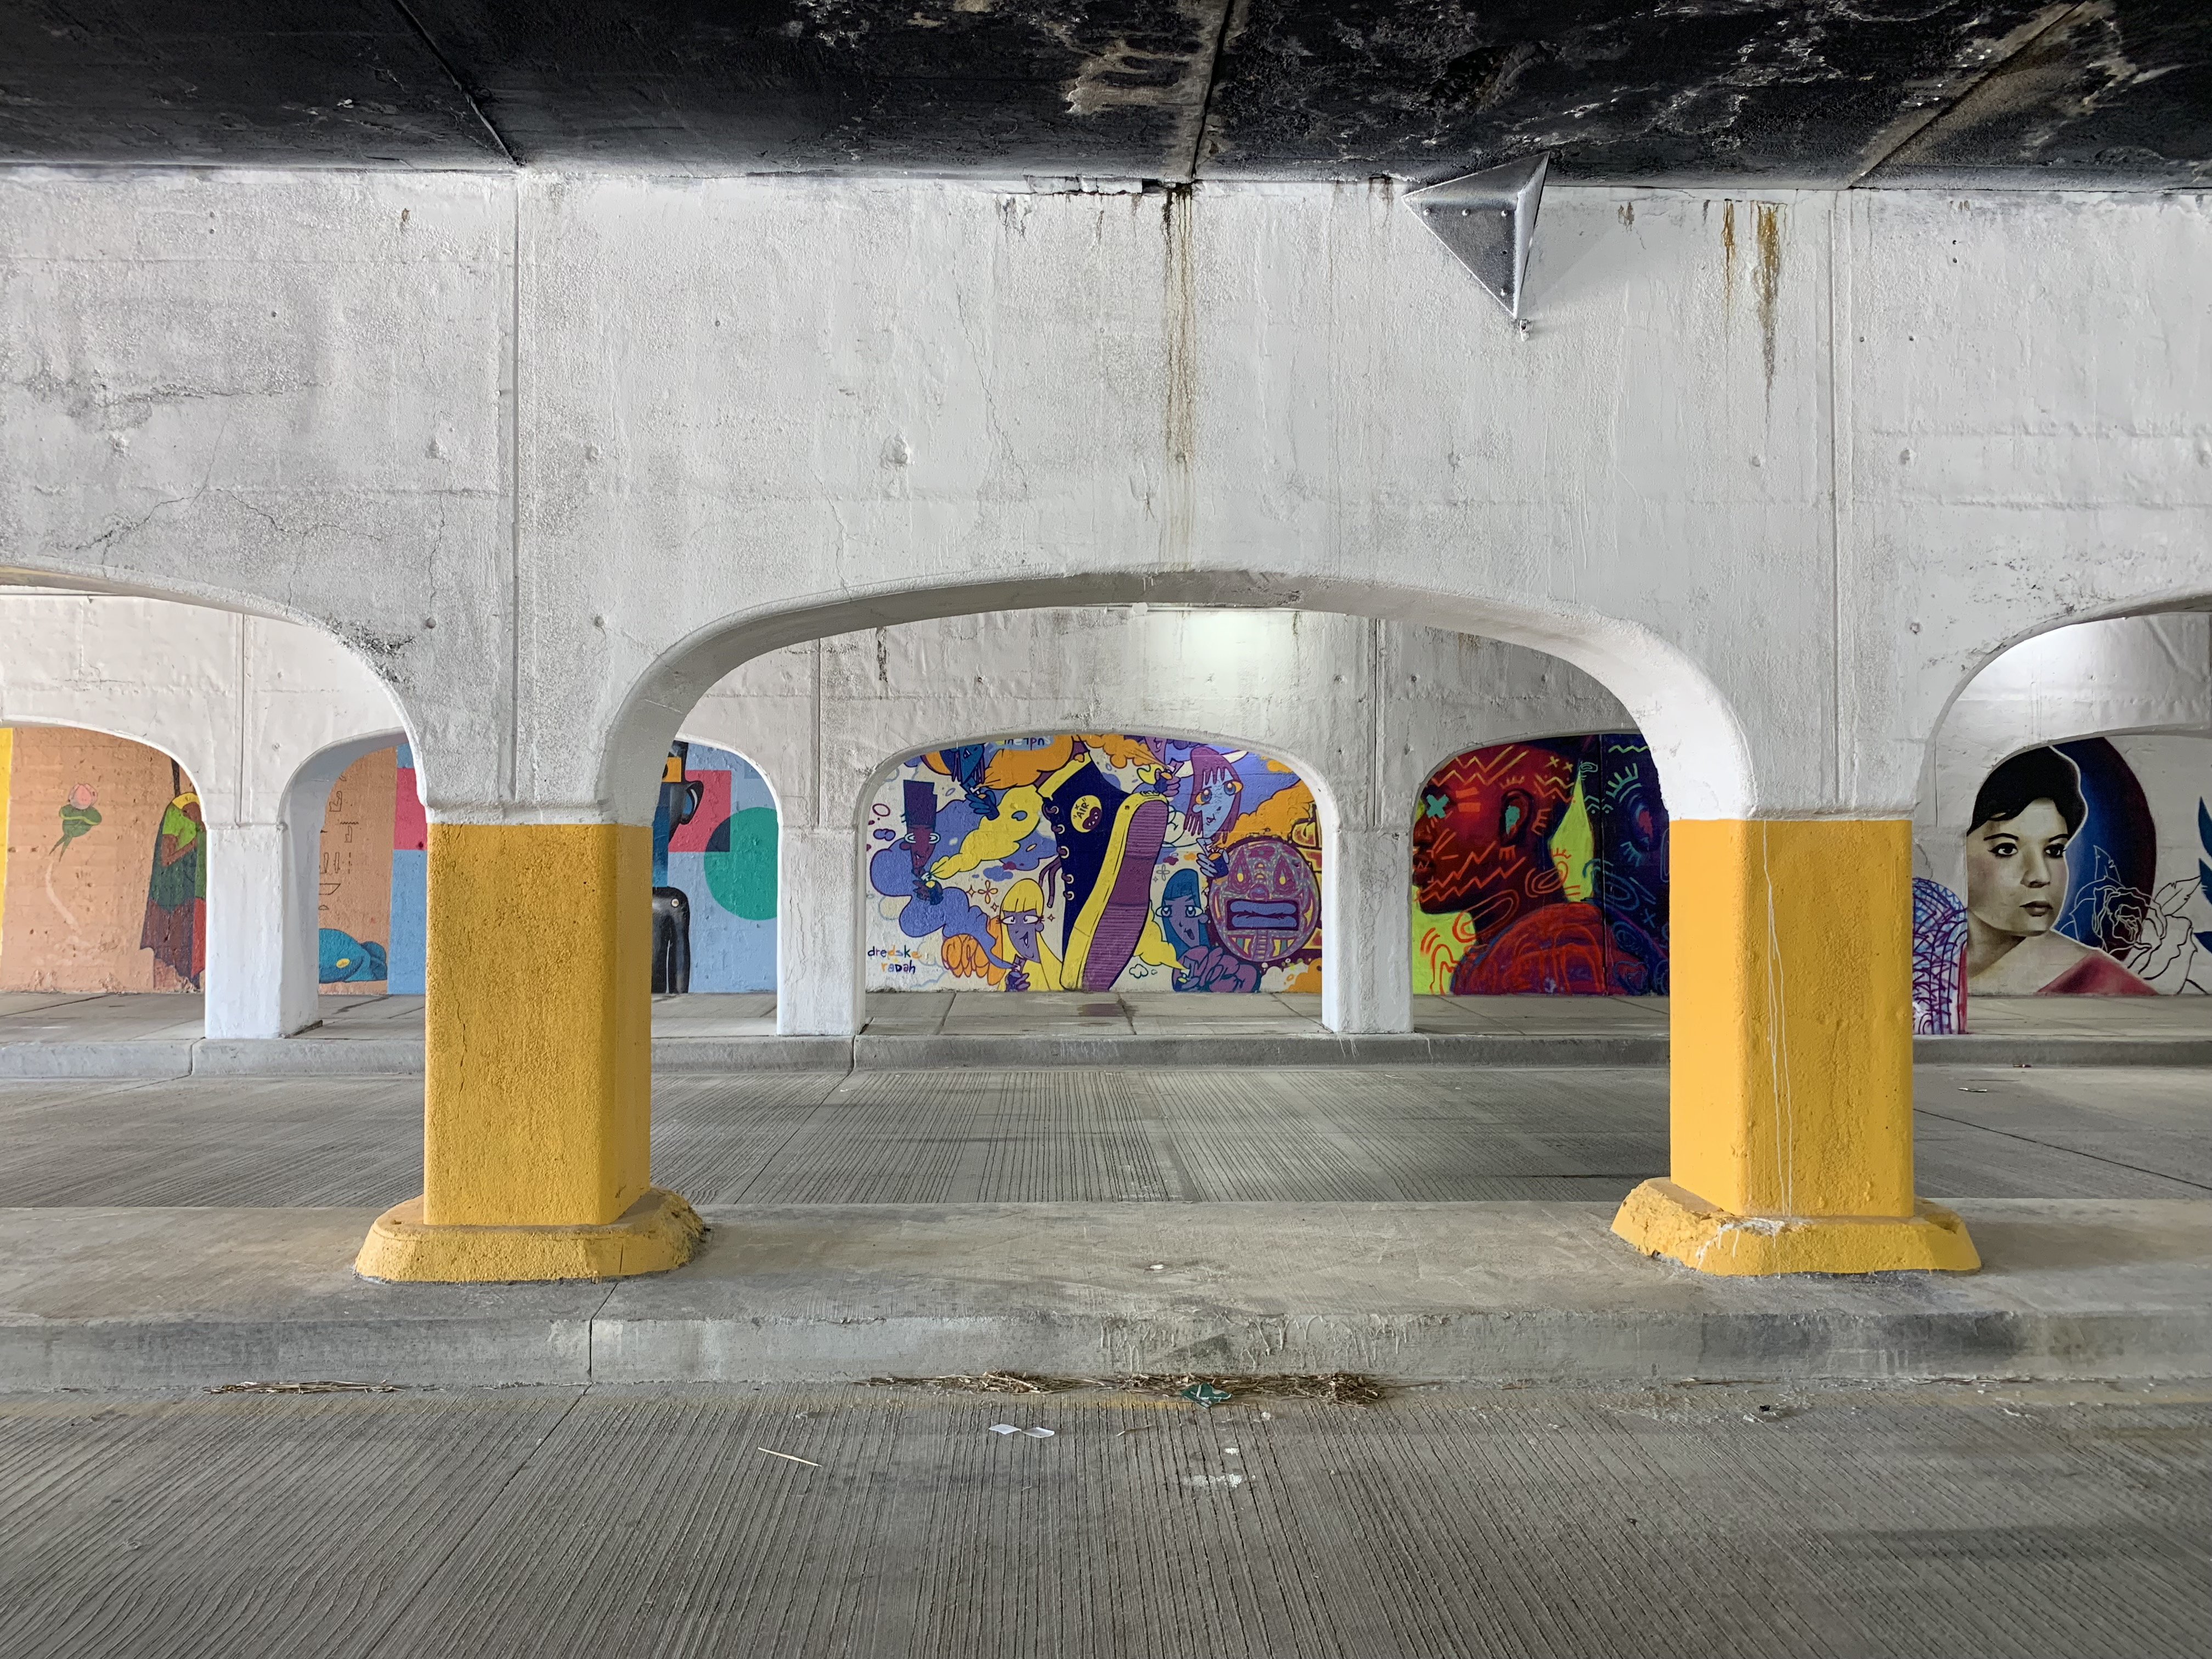 A snapshot of the colorful murals painted in a viaduct on Peoria Street between 16th Street and 16th Place as part of a project organized in the fall by Pilsen gallery owner Delilah Martinez.